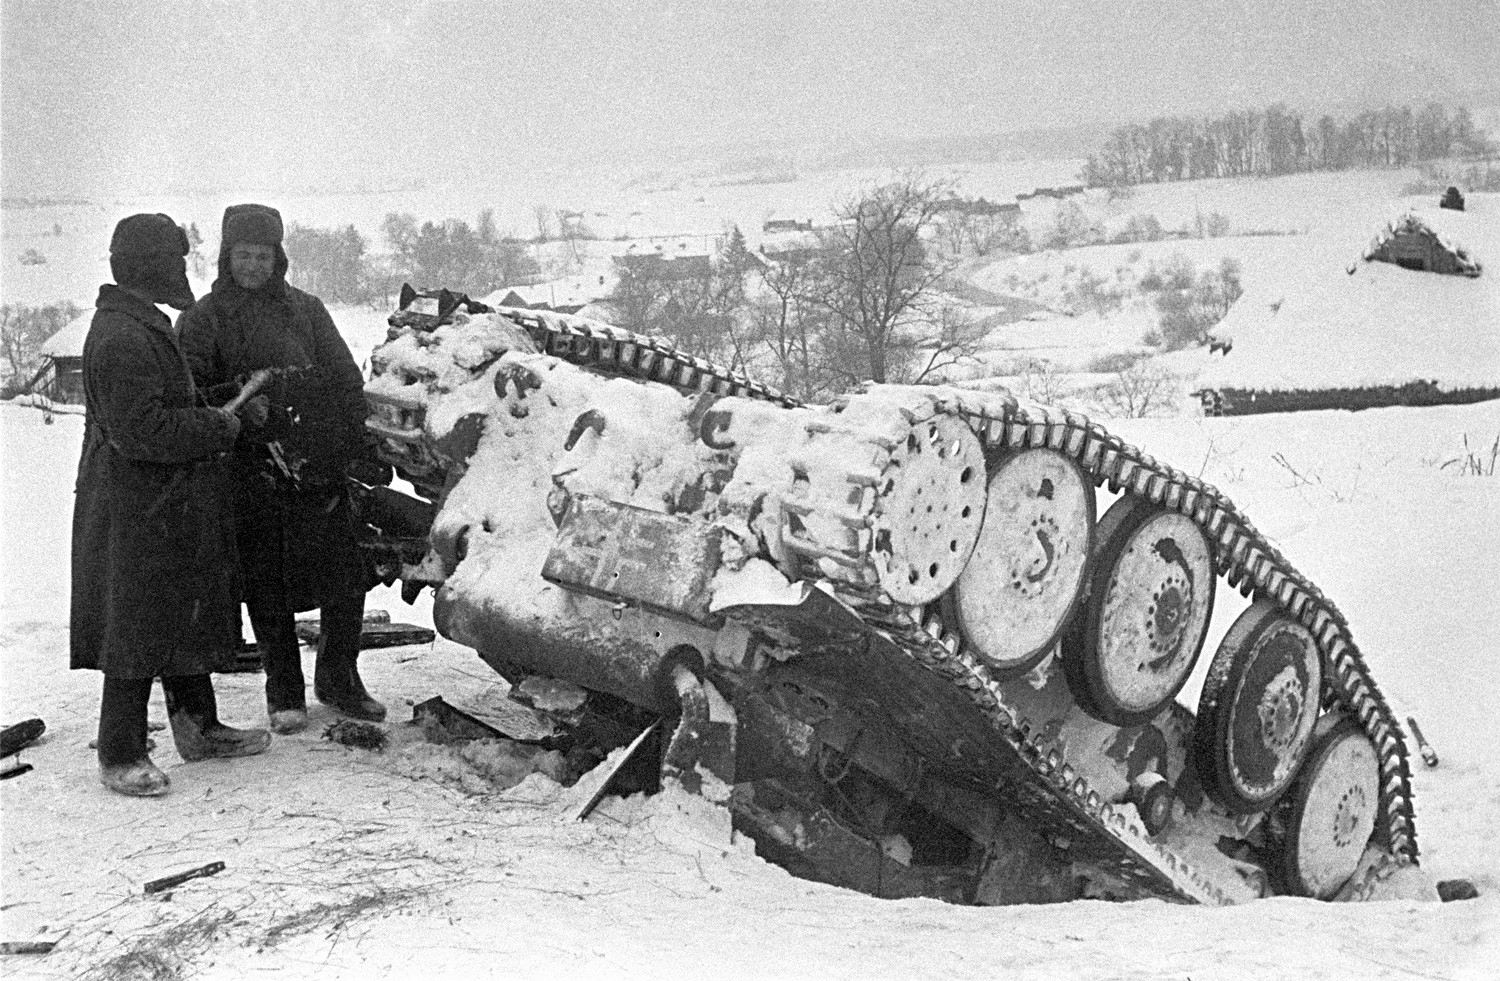 Two Soviet soldiers near a disabled Nazi tank. The Battle of Moscow.